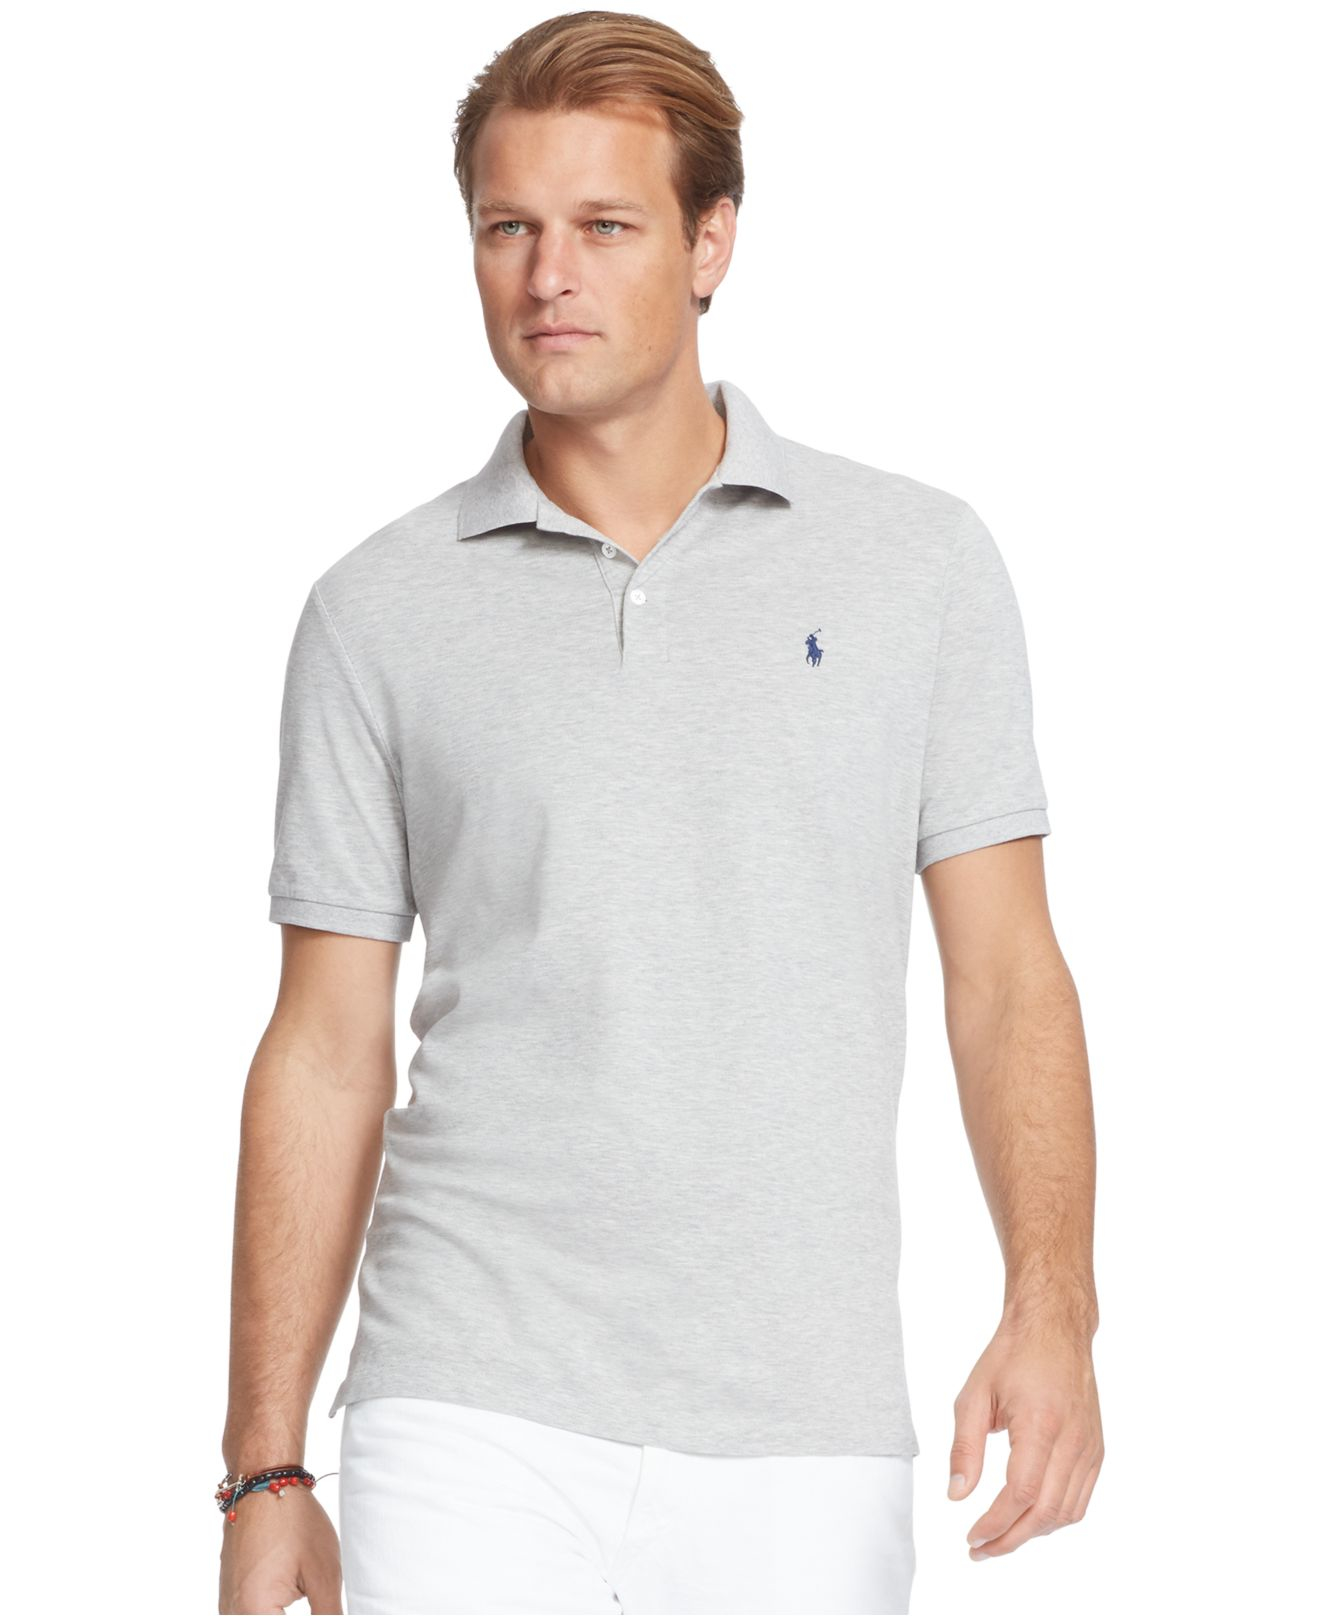 Polo Ralph Lauren Big & Tall Shop men's big & tall clothing by Ralph Lauren. Selections include big & tall suits, shirts, pants, outerwear & more in a variety of styles & colors.